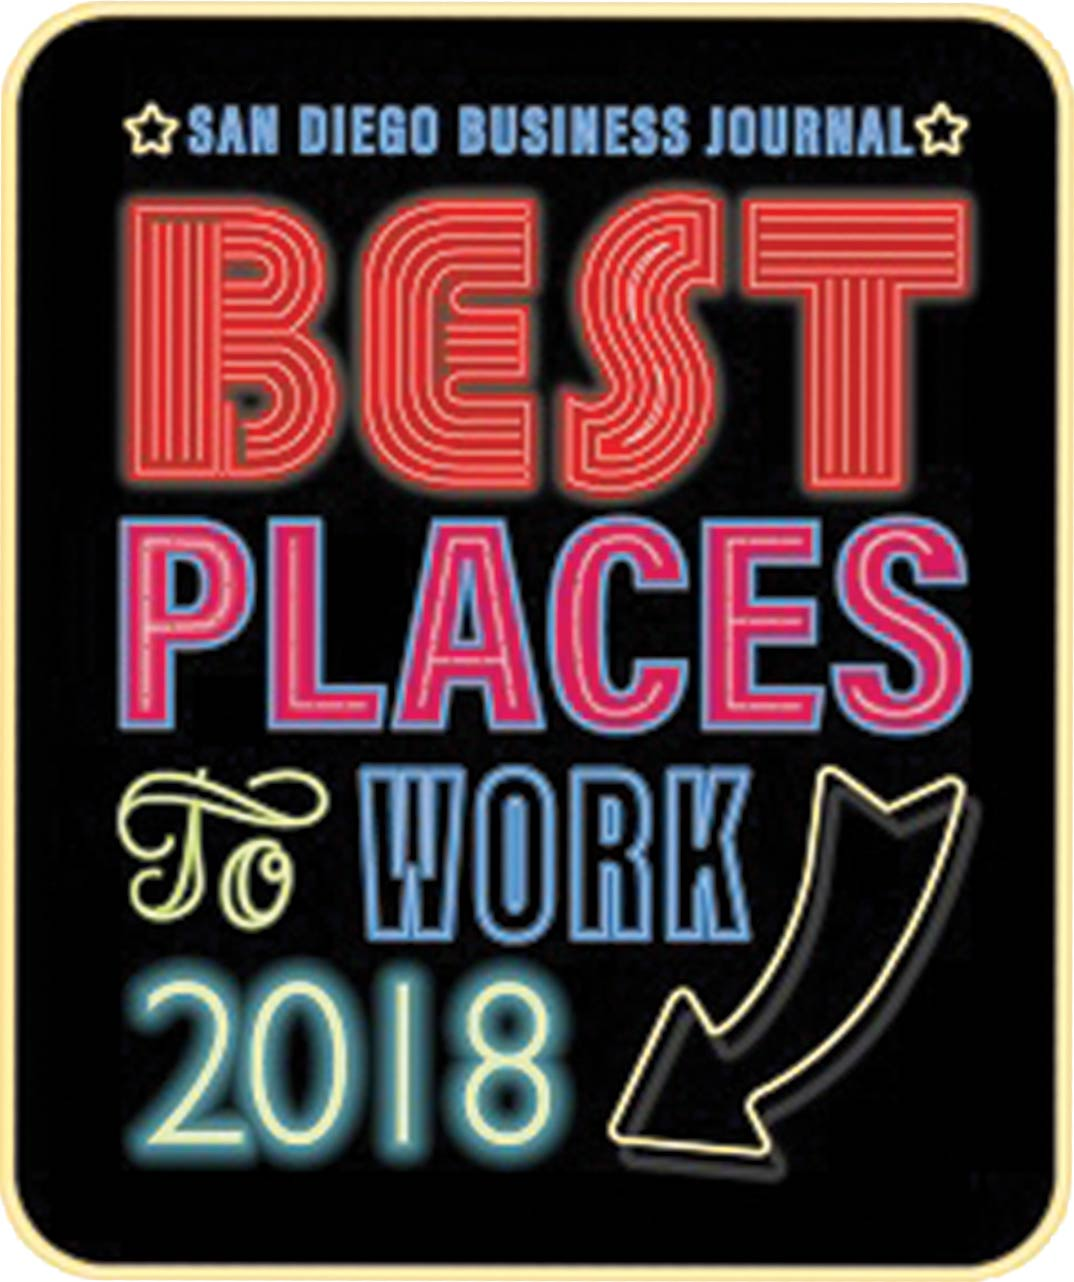 Image of the San Diego Business Journal's 2018 Best Places To Work logo.